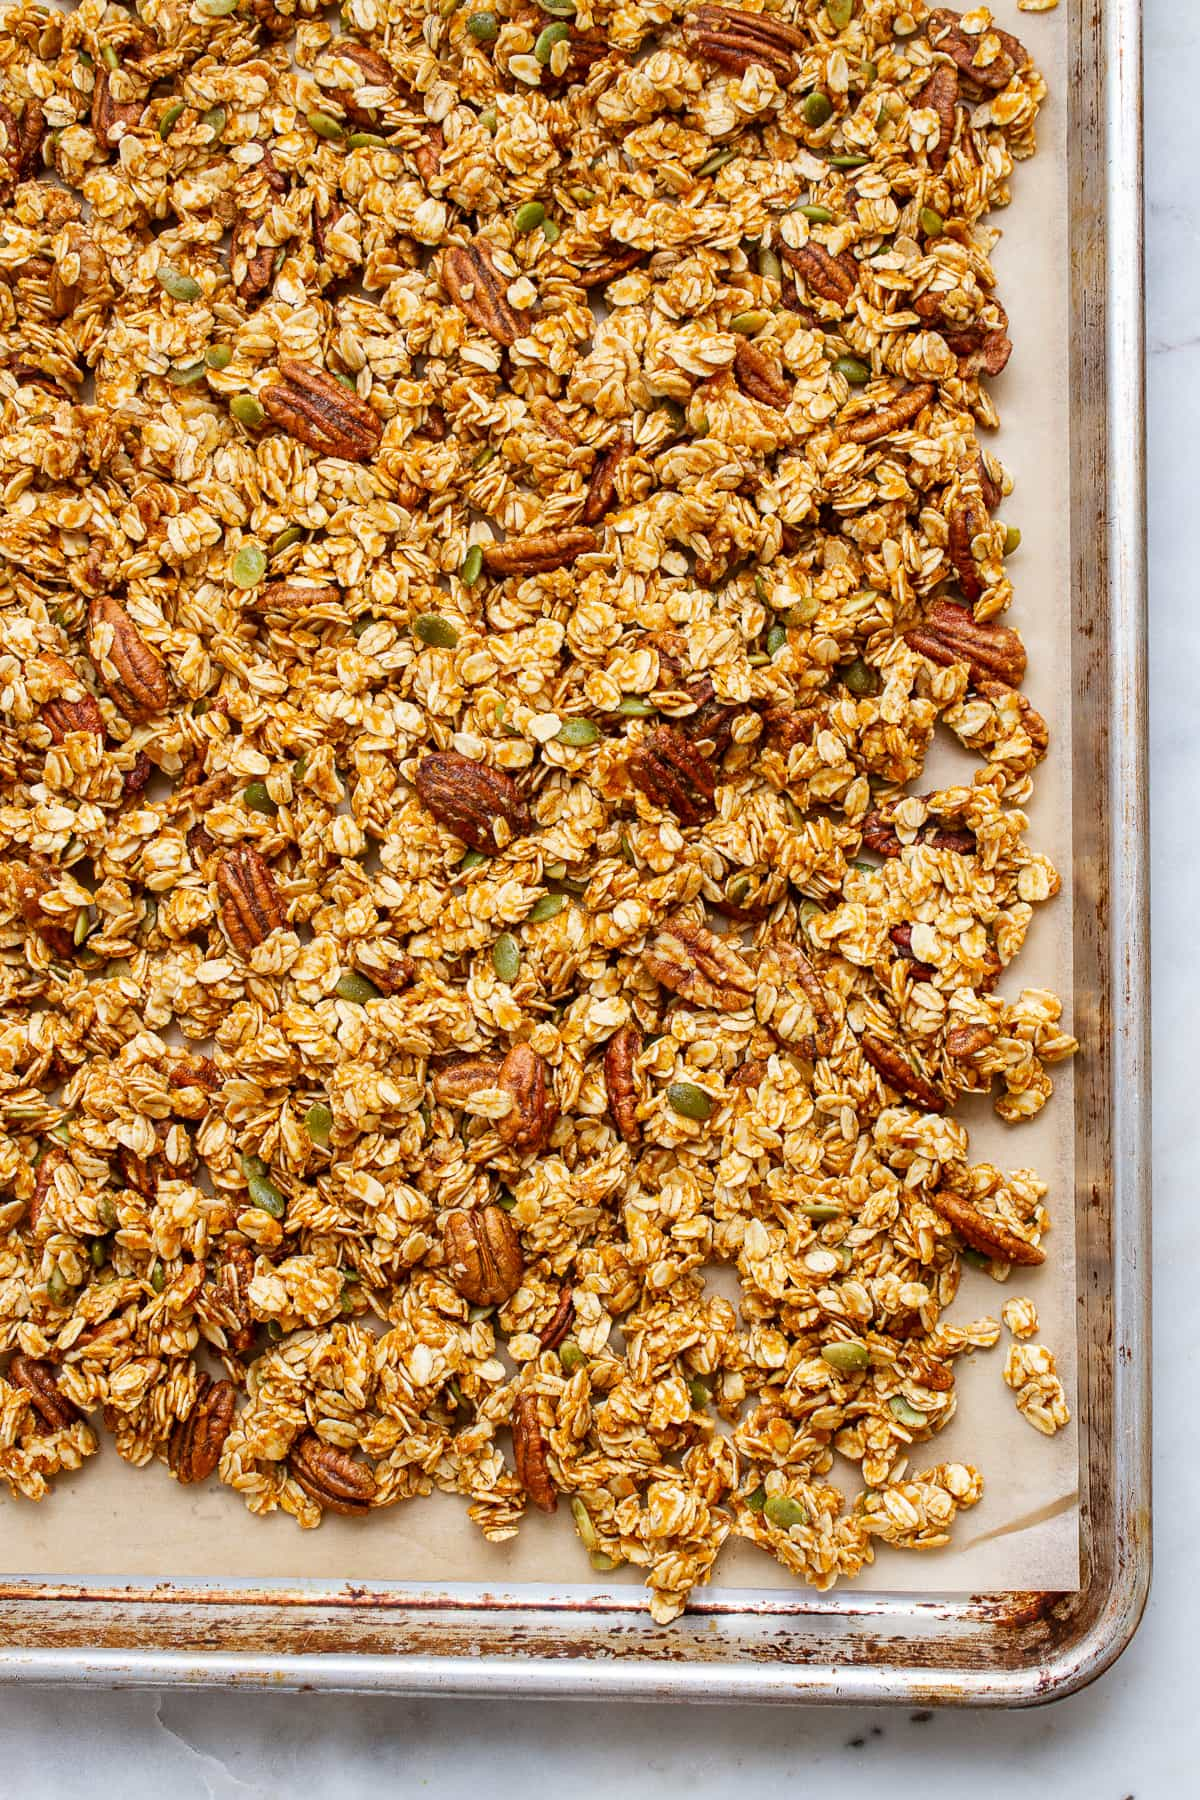 top down view of oil free pumpkin granola spread on a baking sheet before going into the oven to bake.